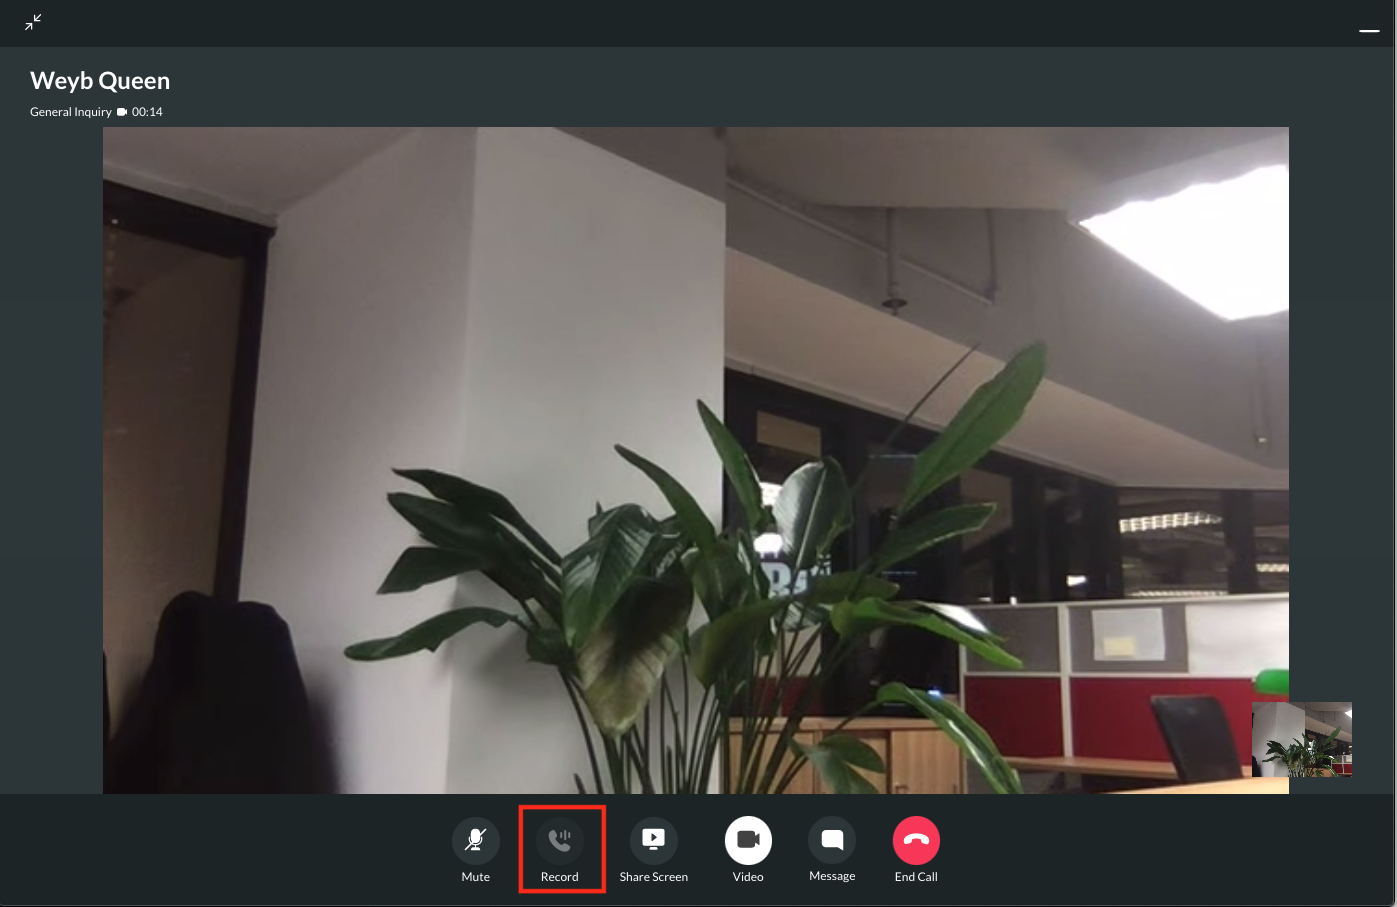 Record the video call